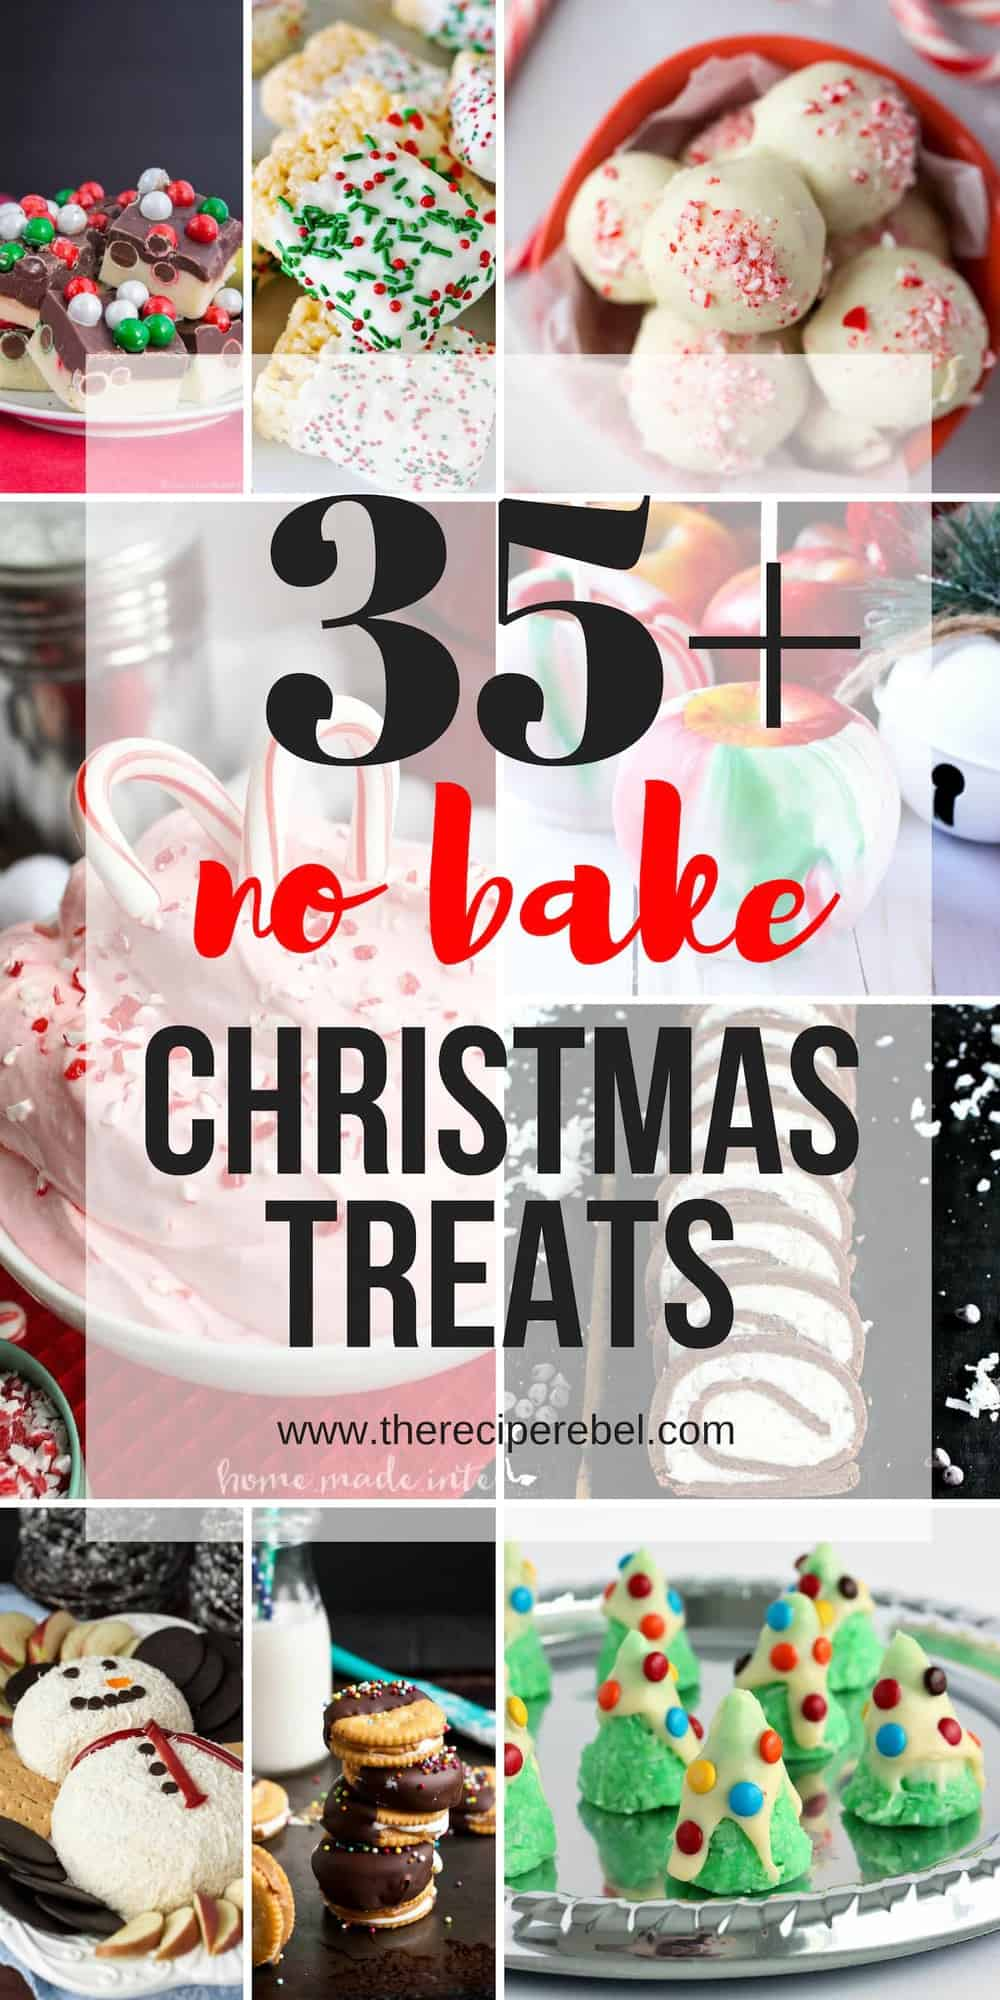 no bake easy christmas treats collage